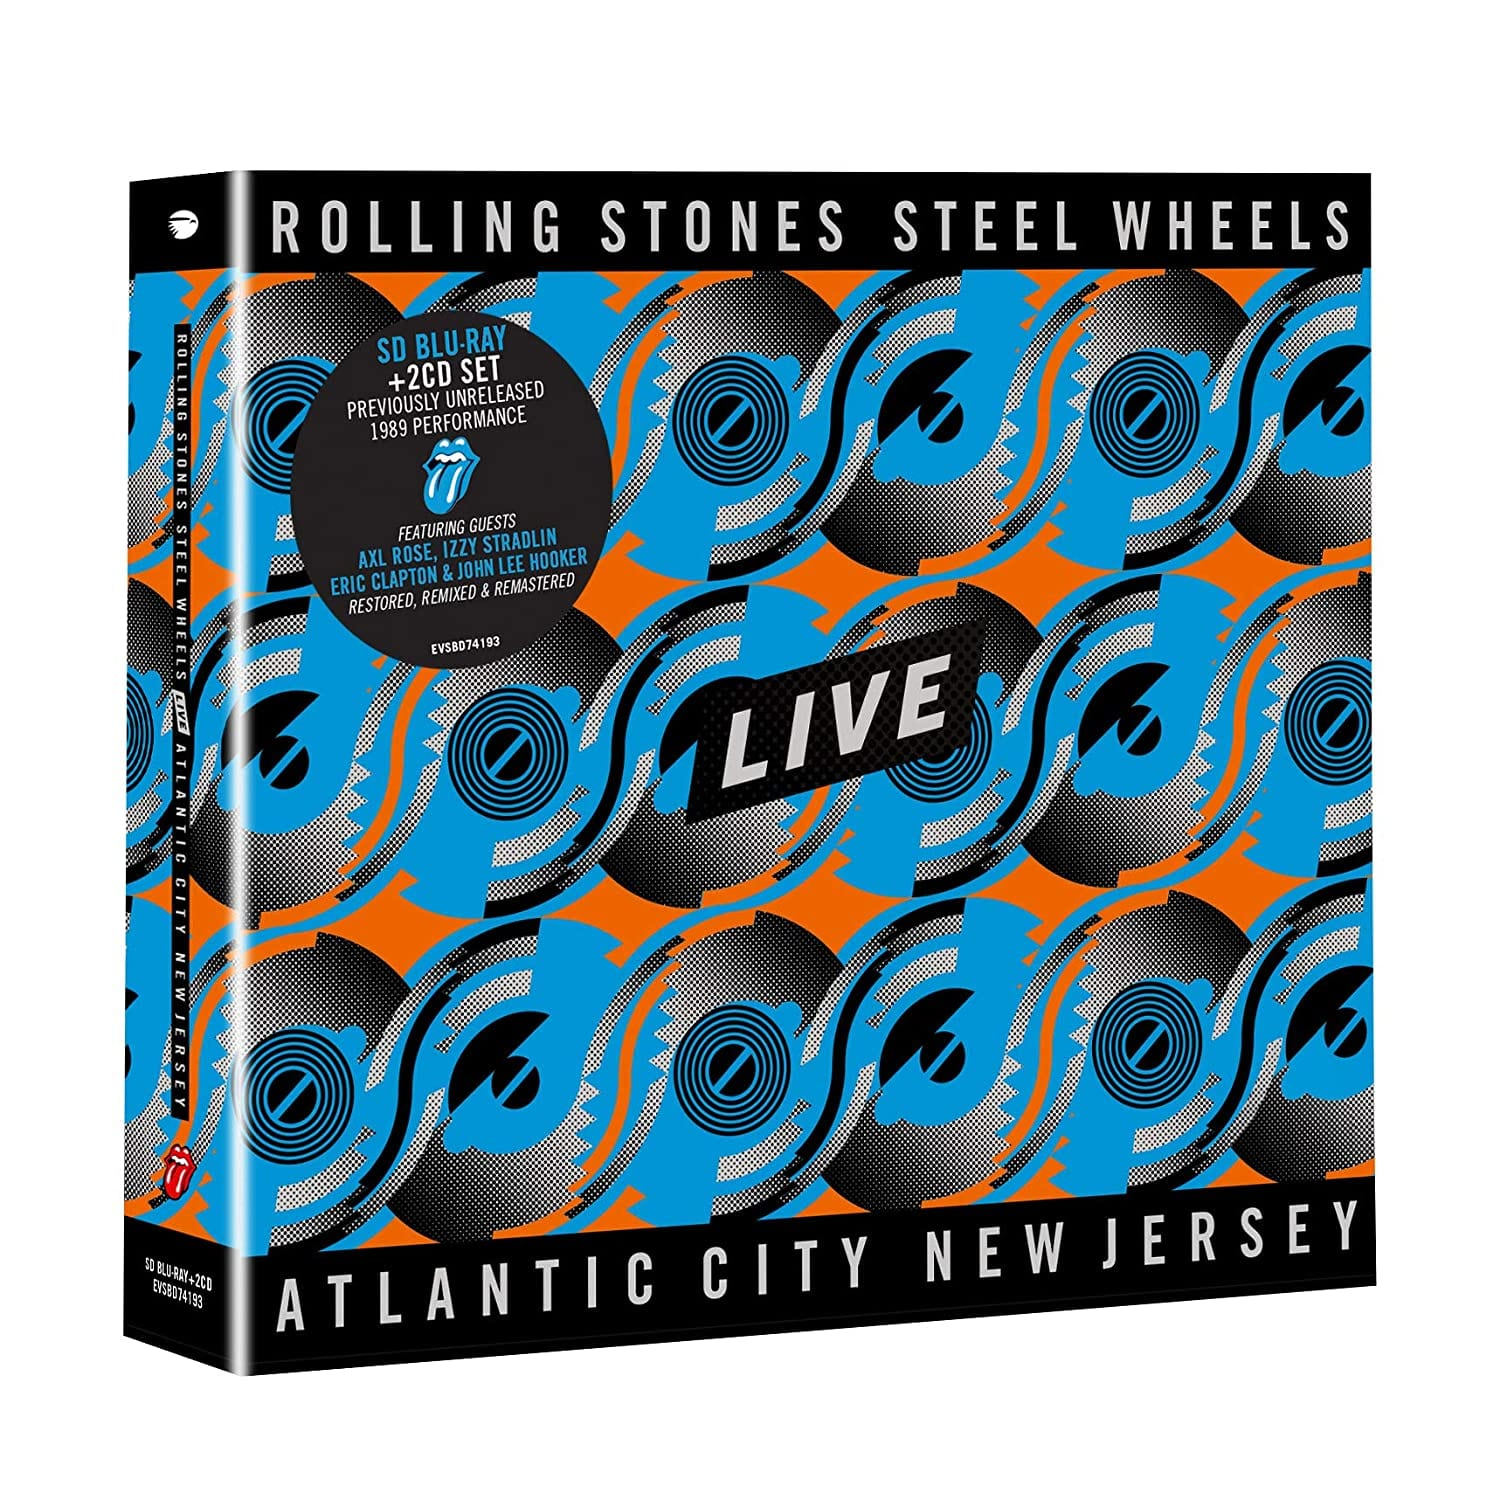 Rolling Stones, The - Steel Wheels Live: Live From Atlantic City, NJ, 1989 [2CD+BluRay] - Urban Vinyl | Records, Headphones, and more.